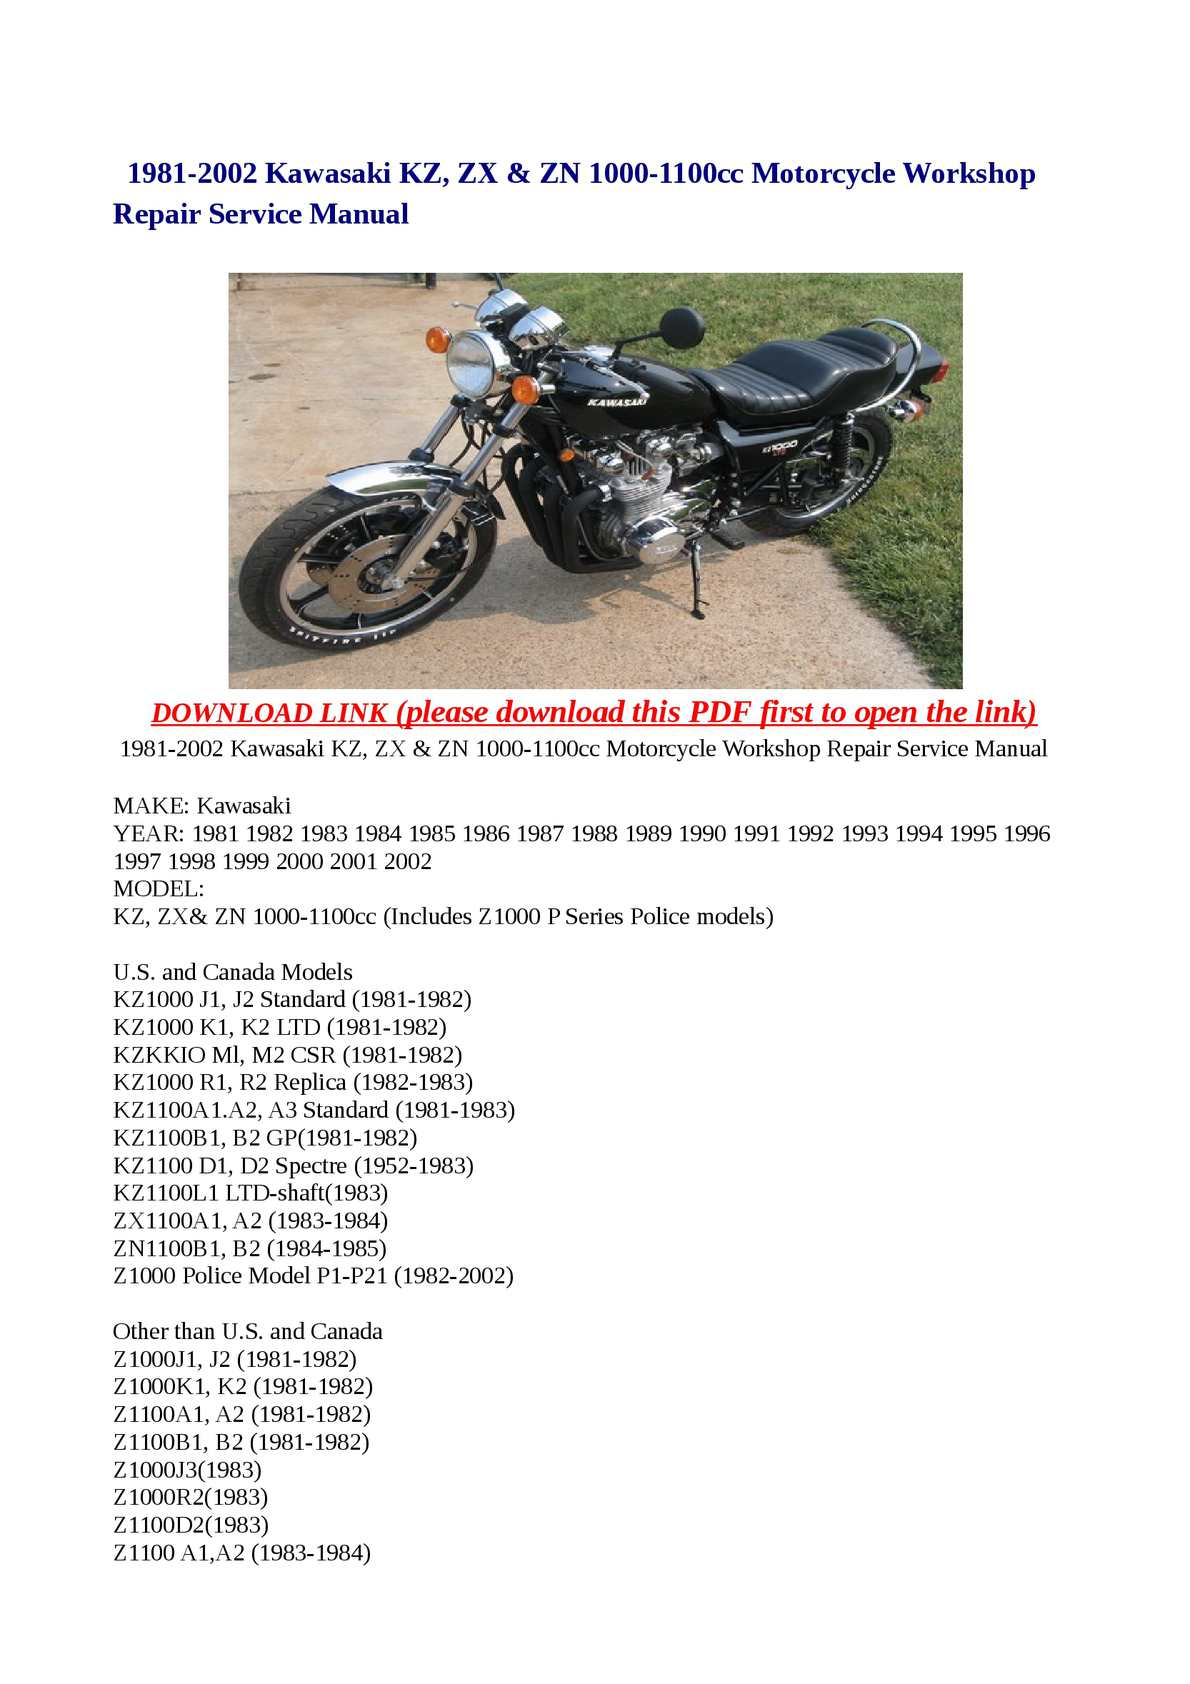 Calamo 1981 2002 Kawasaki Kz Zx Zn 1000 1100cc Motorcycle Z1000 Wiring Diagram Workshop Repair Service Manual